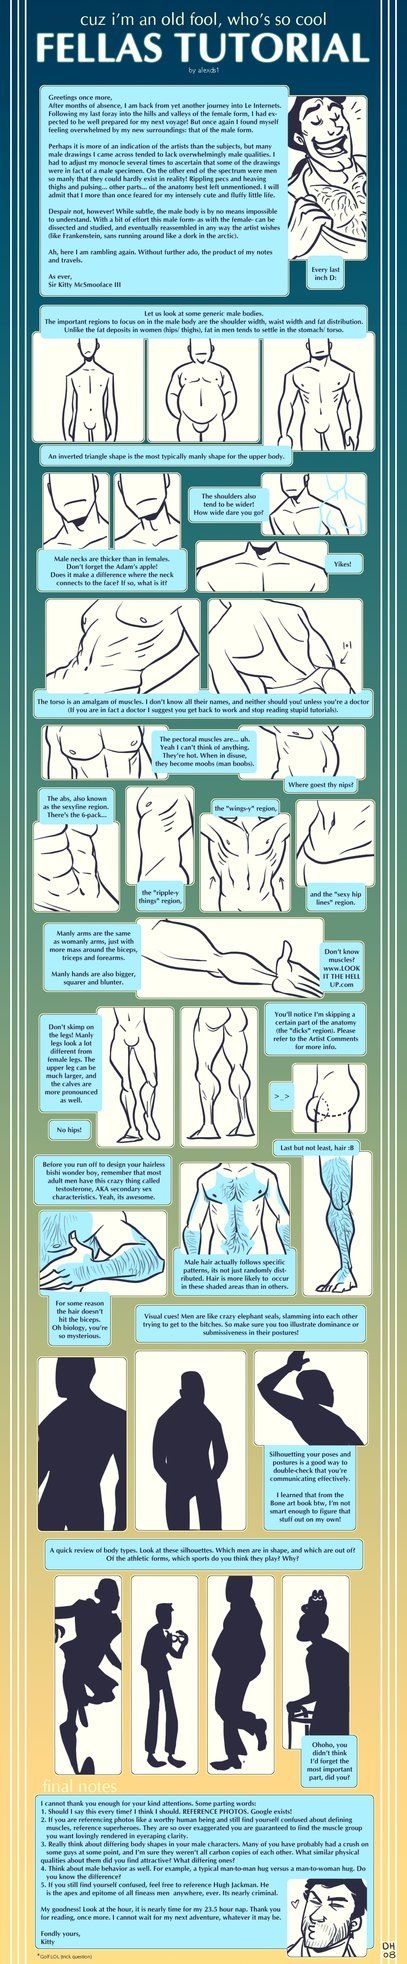 57 best Art tutorials/tips images on Pinterest | Drawing techniques ...